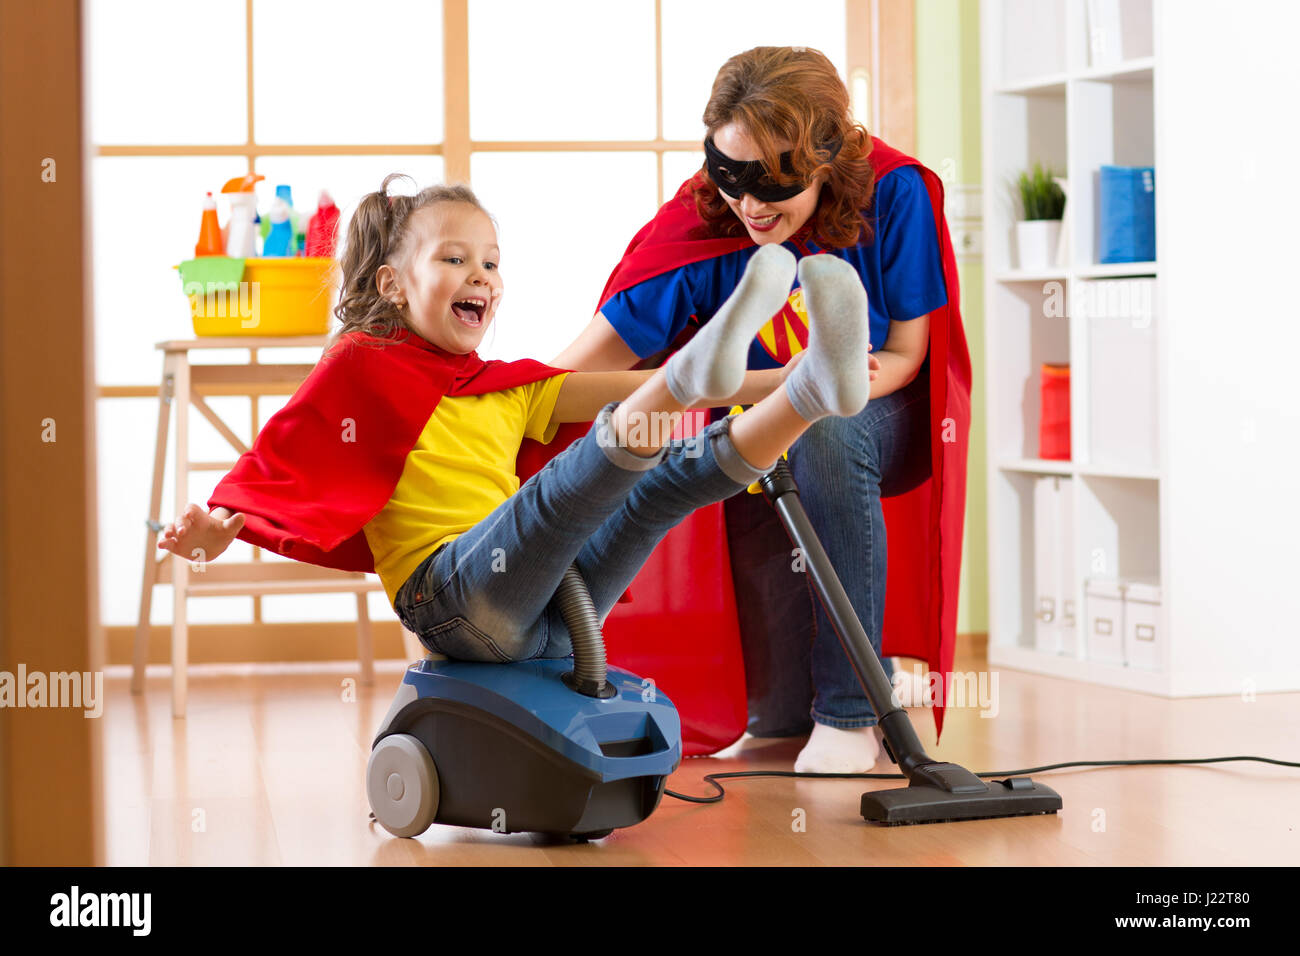 Super hero kid flying on vacuum cleaner. Mother and child daughter cleaning the room and have a fun - Stock Image